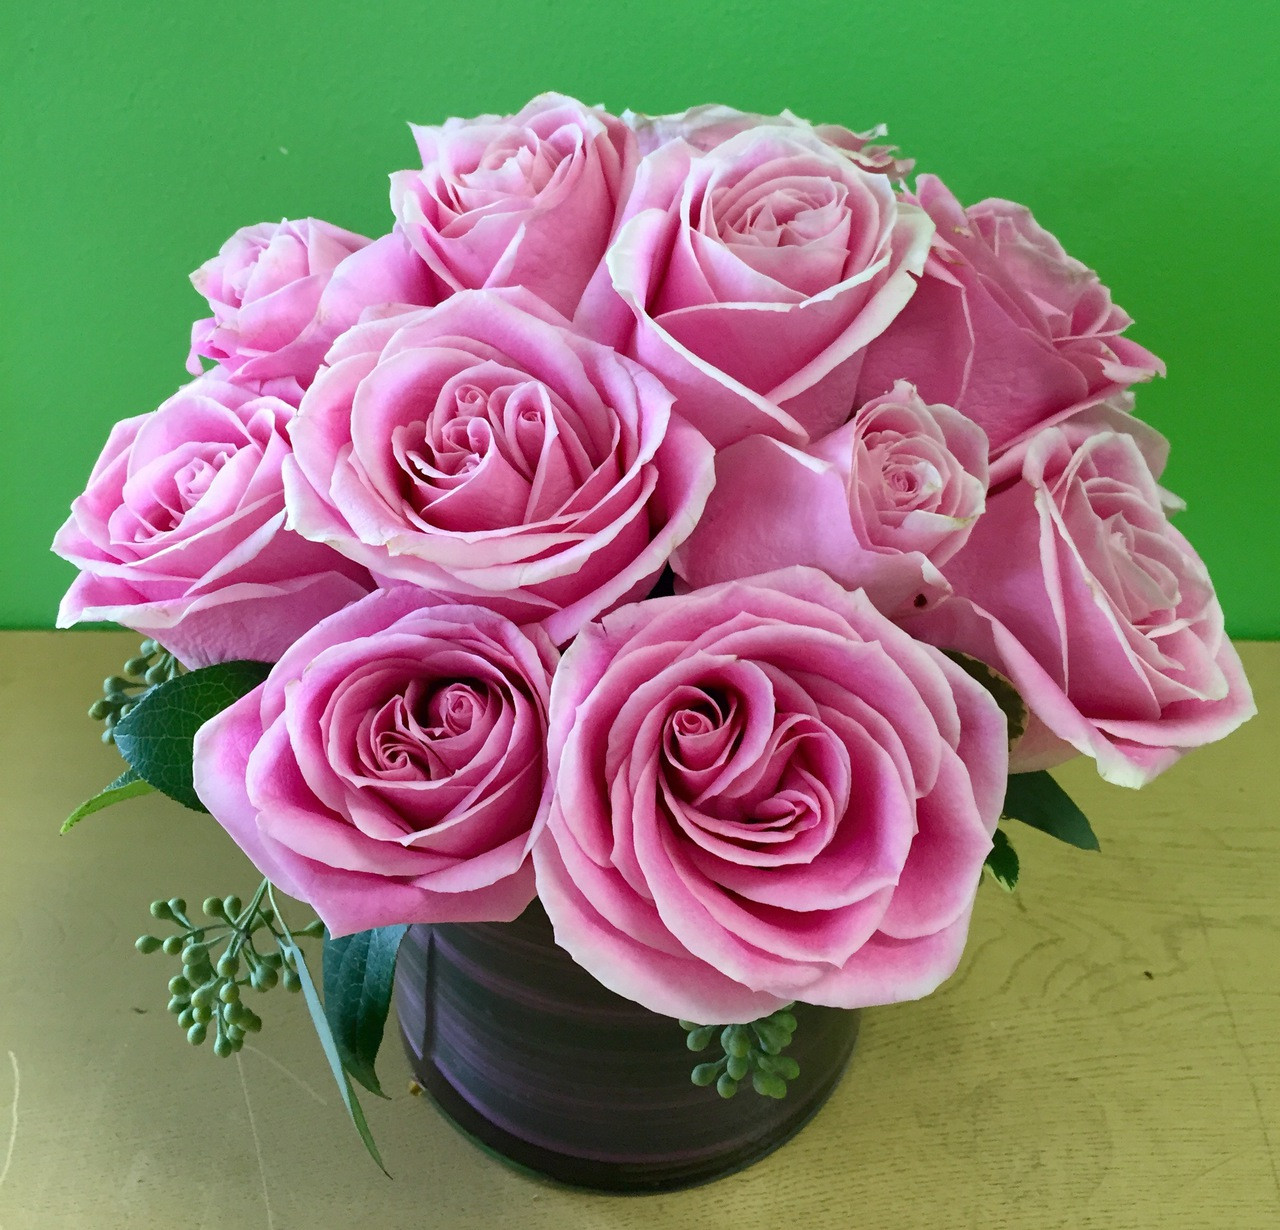 Pink rose special by belvedere flowers philadelphia area florist pink rose special mightylinksfo